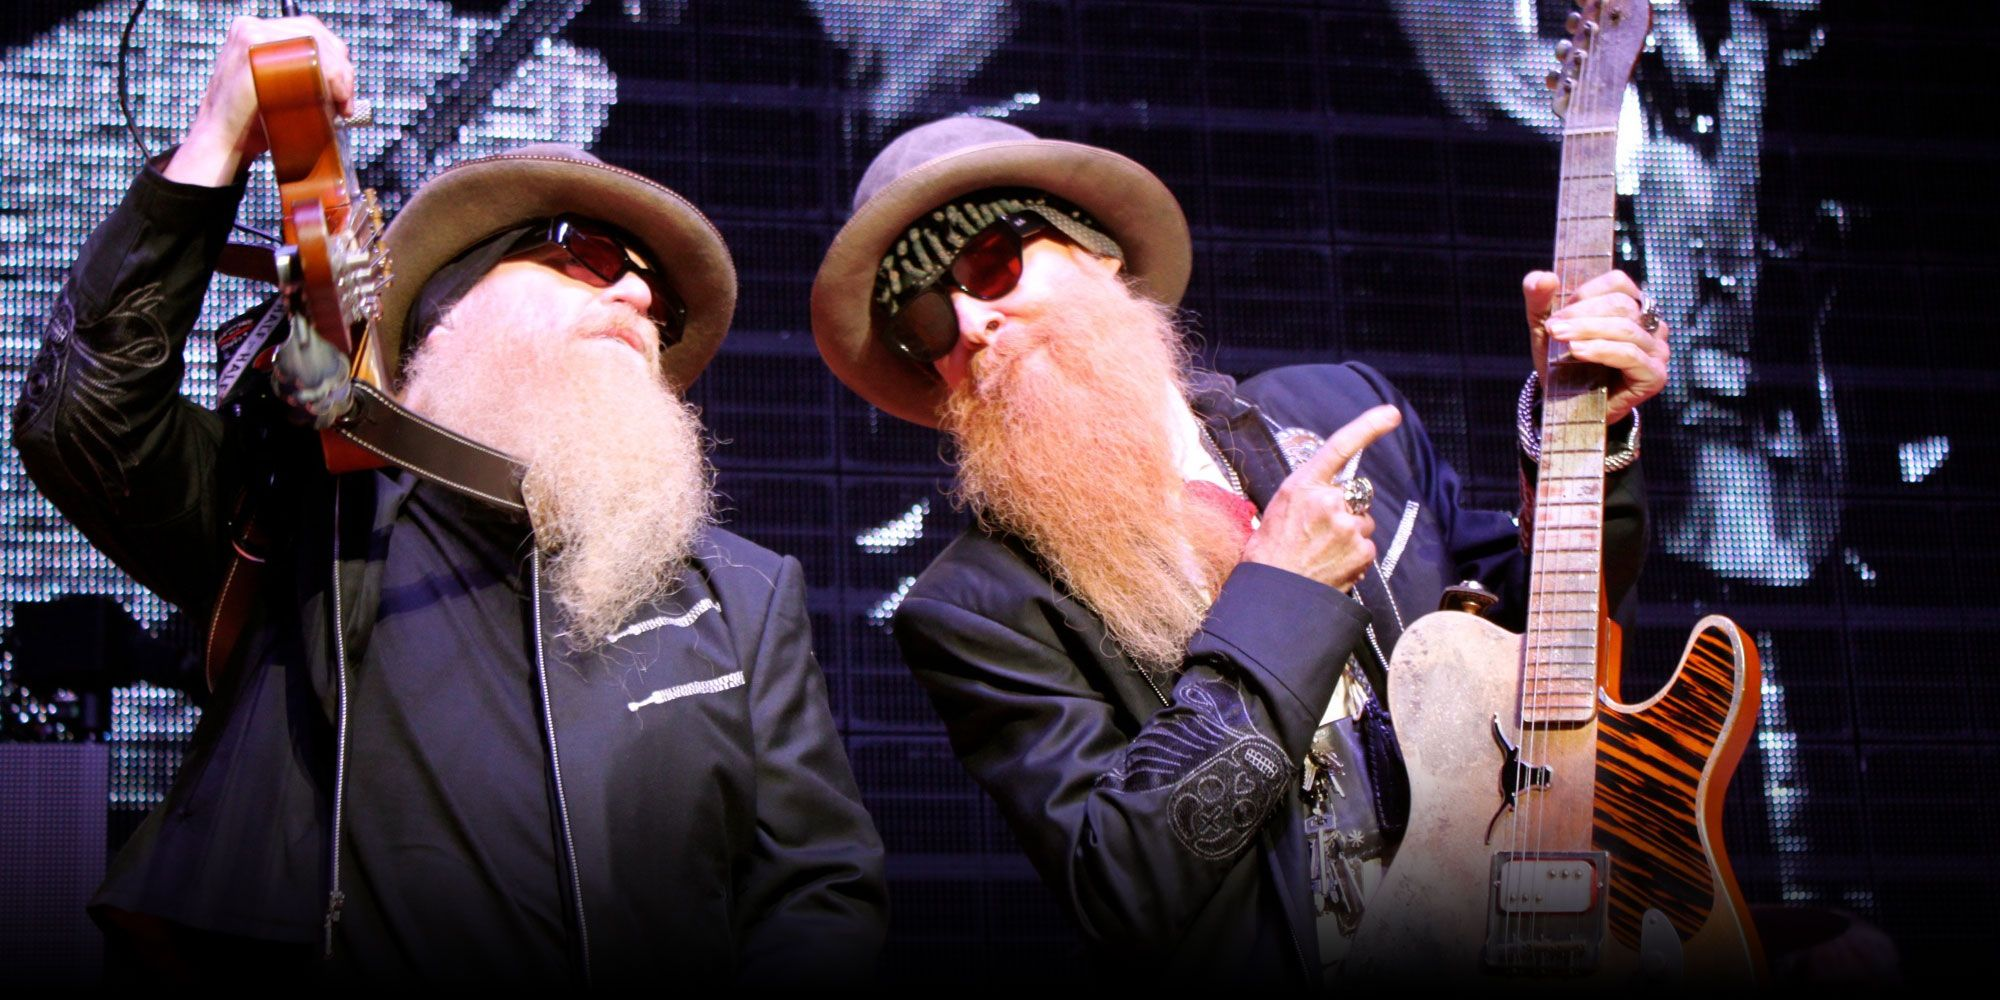 Zz top iphone wallpaper - Rock Hd Wallpapers Backgrounds Wallpaper 1600 1200 Zz Top Wallpapers 45 Wallpapers